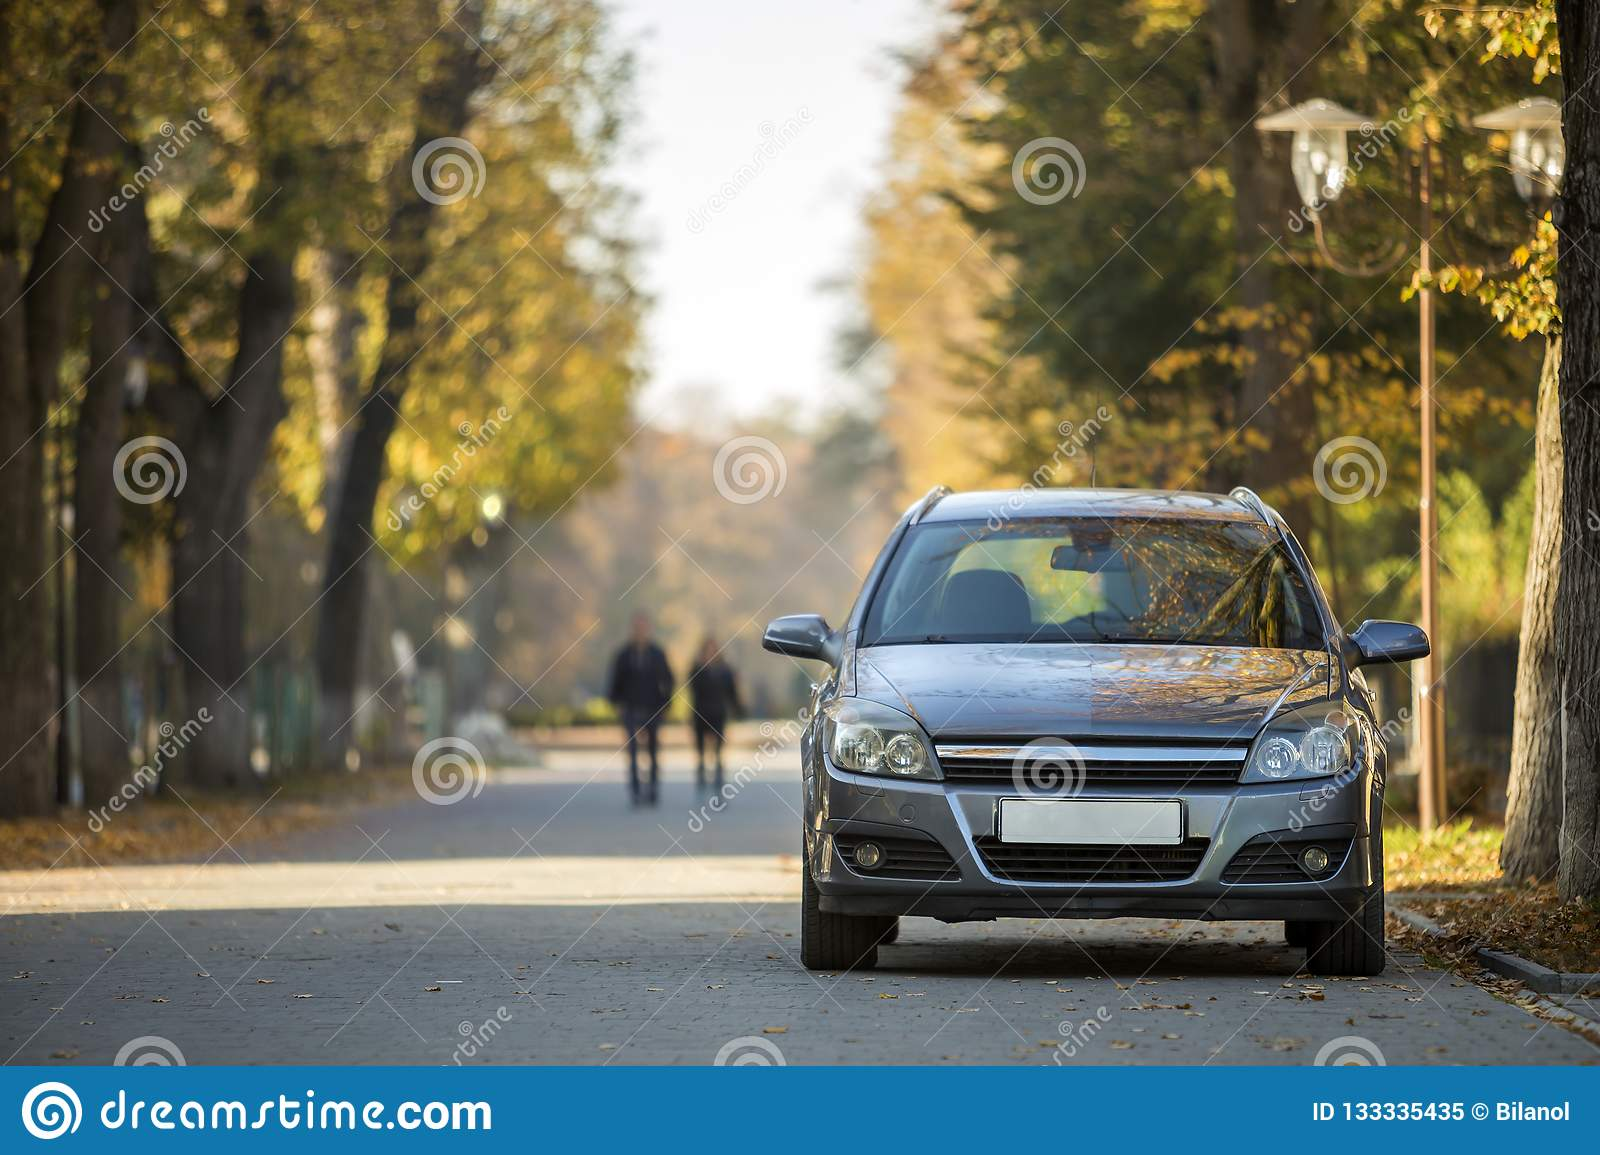 Front view of gray shiny empty car parked in quiet area on asphalt road at lamppost on blurred green and yellow trees